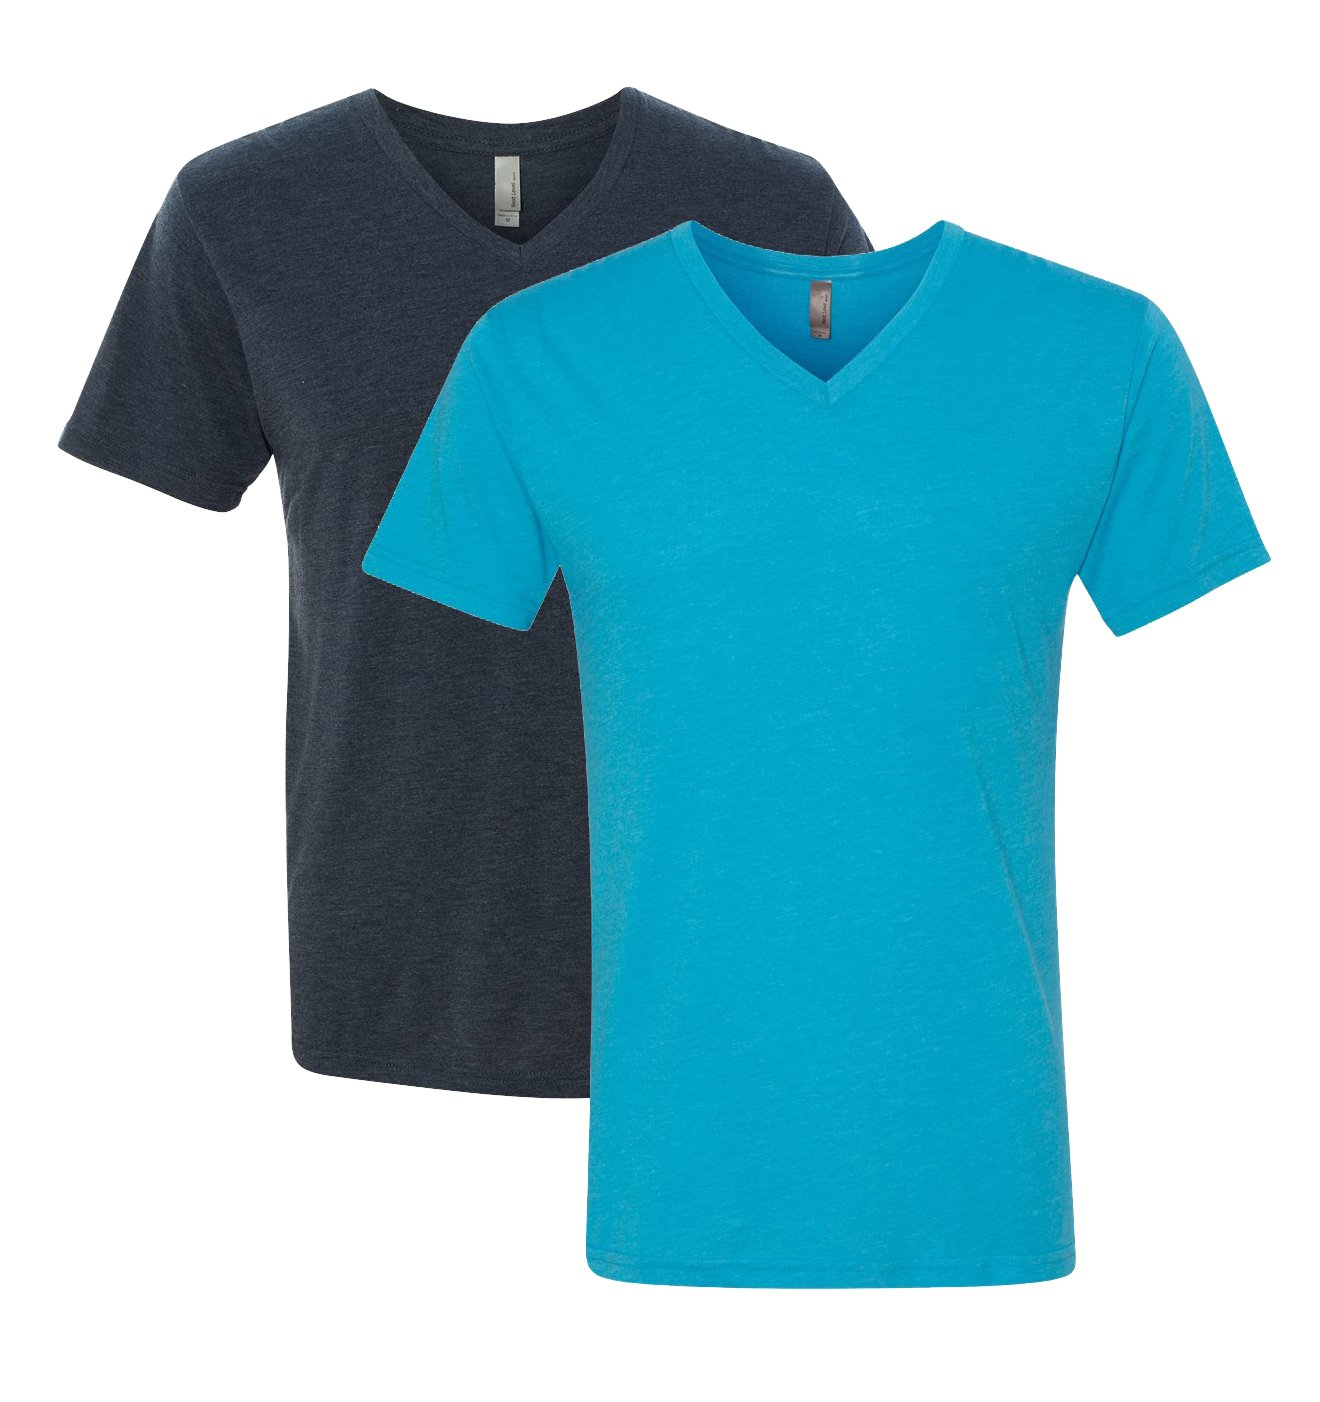 Next Level Triblend Vee Tee, Vintage Navy + Vintage Turquoise (2 Pack), Medium